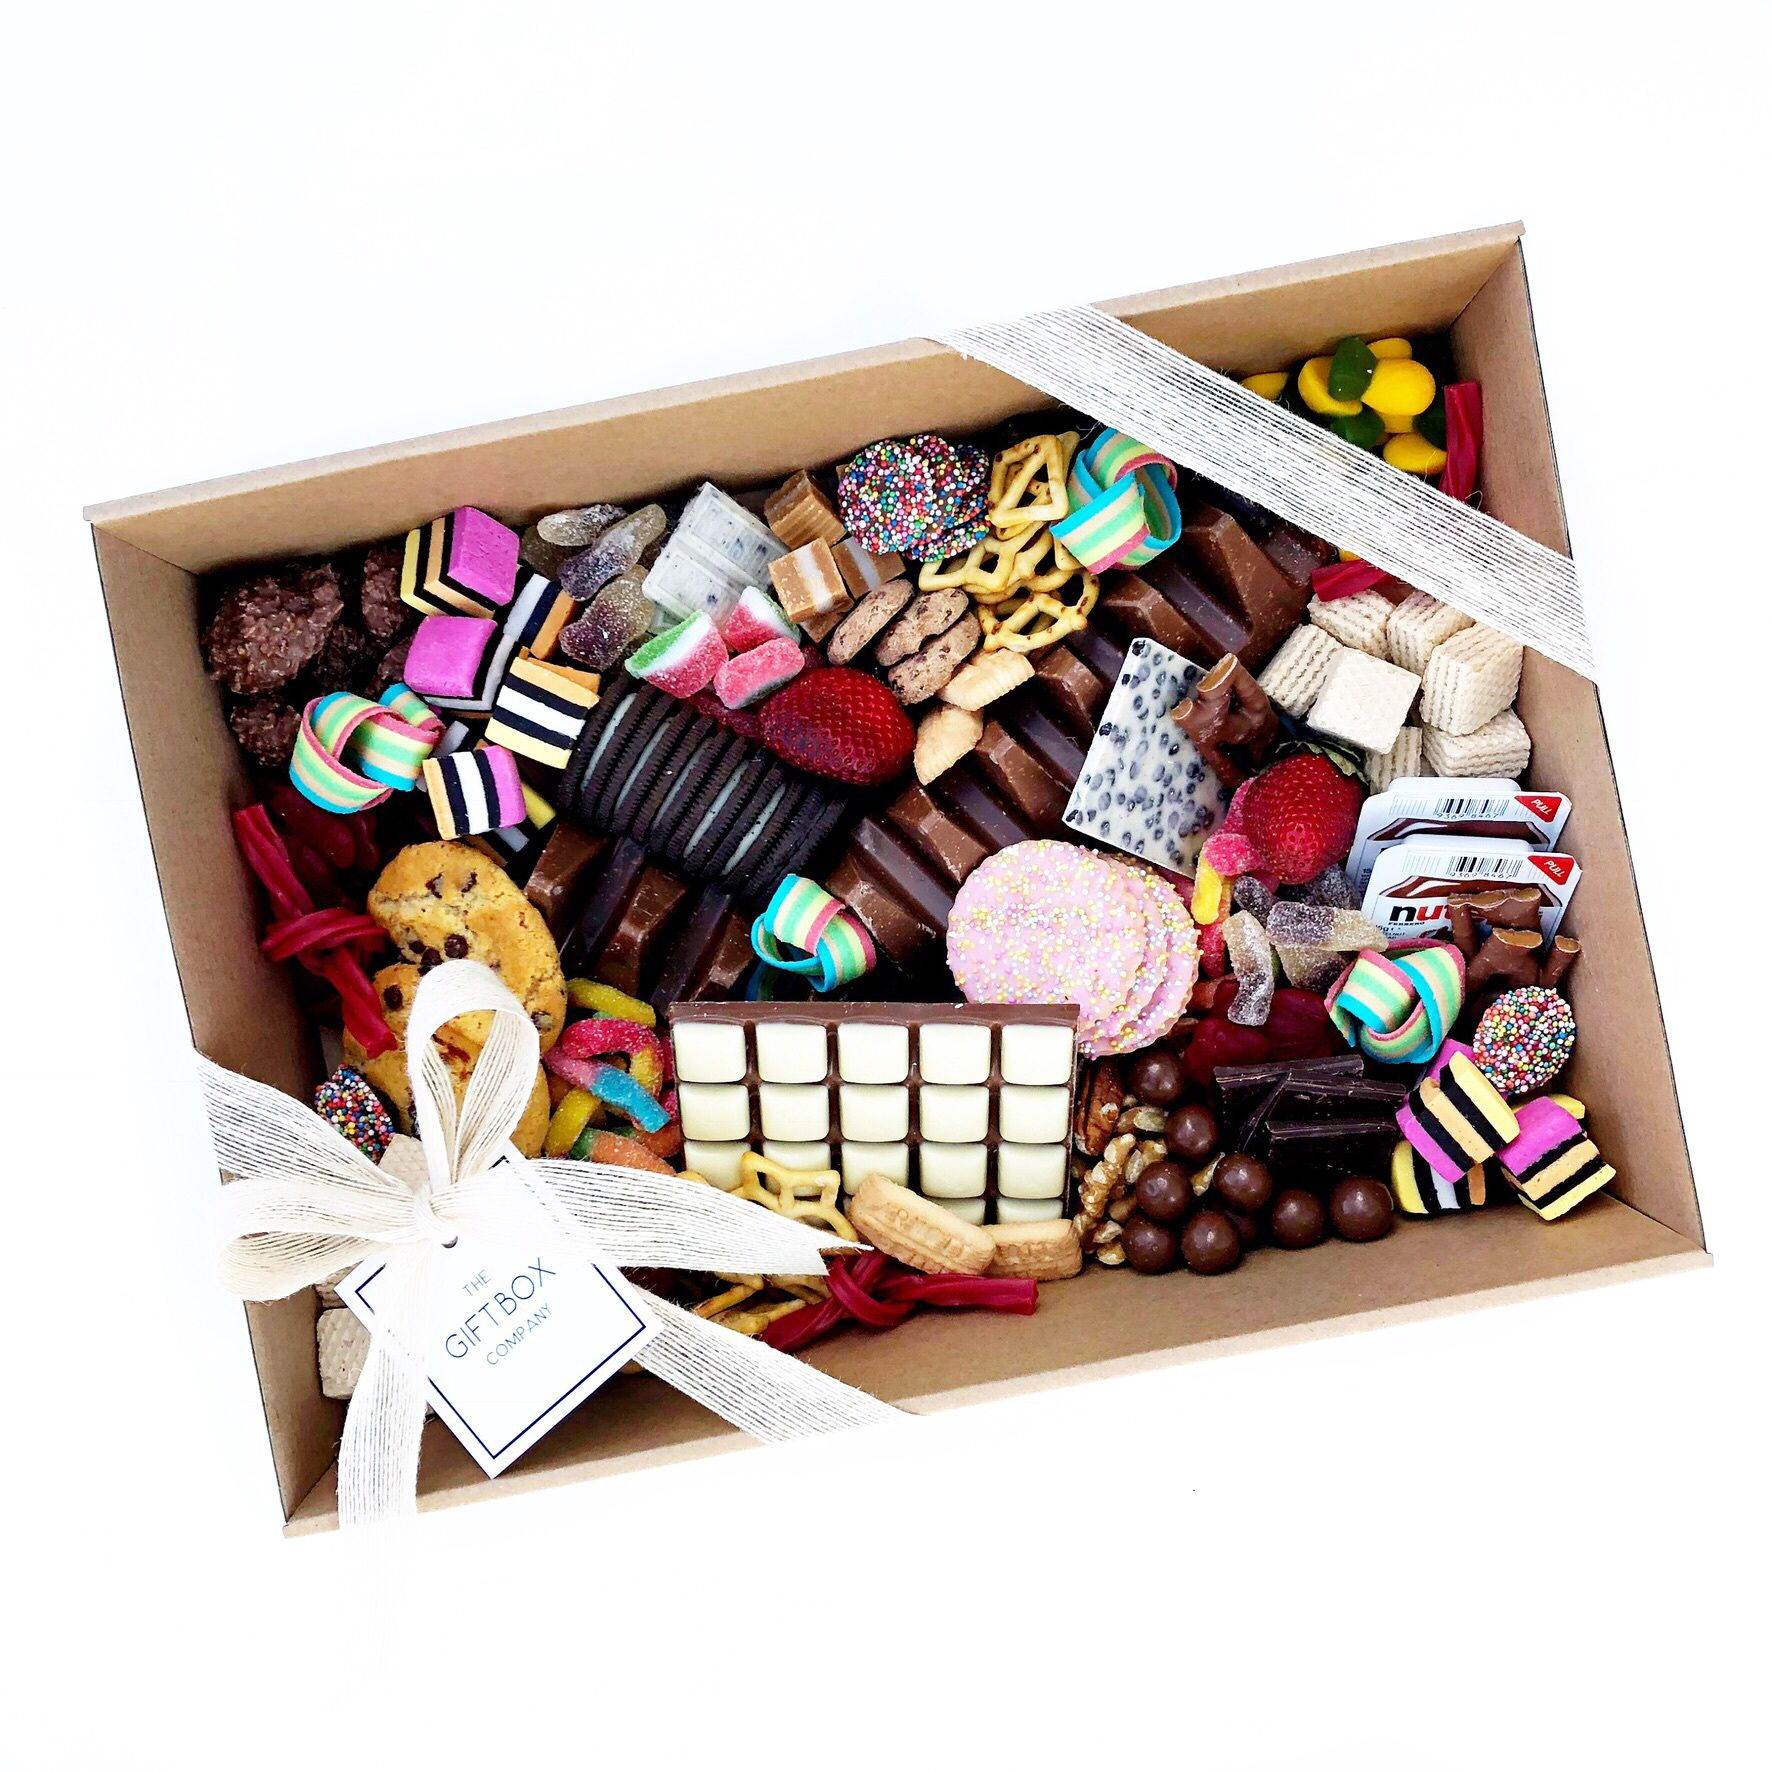 The Candy Shoppe The Gift Box Co. Dessert gifts, Xmas